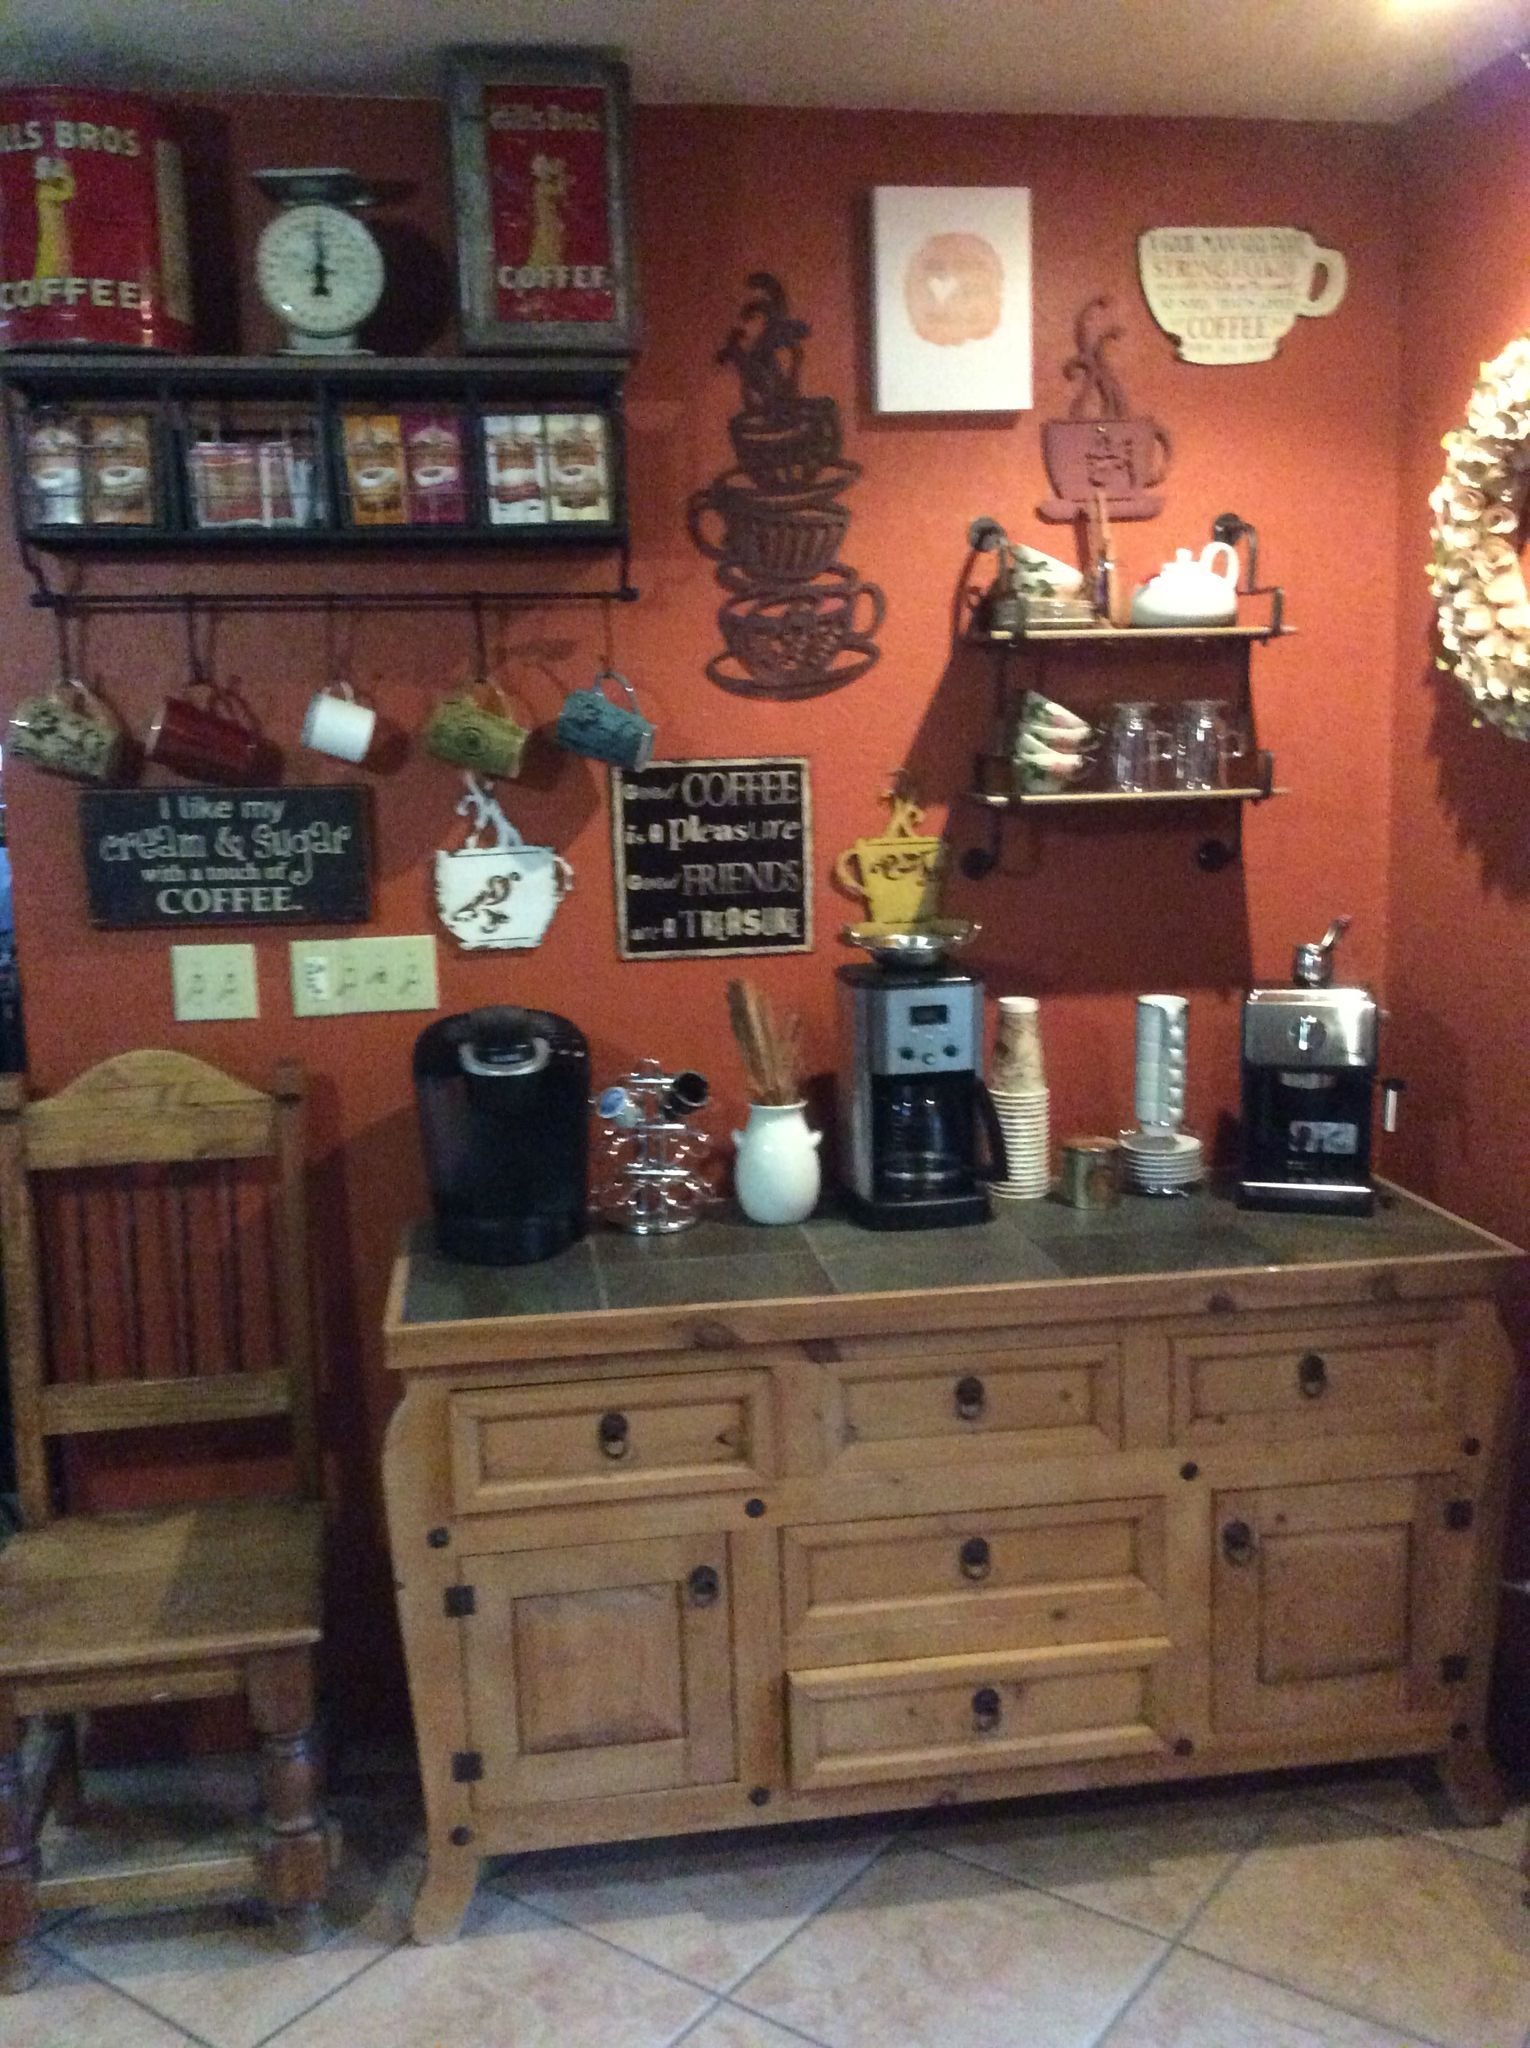 Tiny Craftsman Comes With Espresso Station: We Just Finished Our Coffee Bar. Regular, K- Cups Or